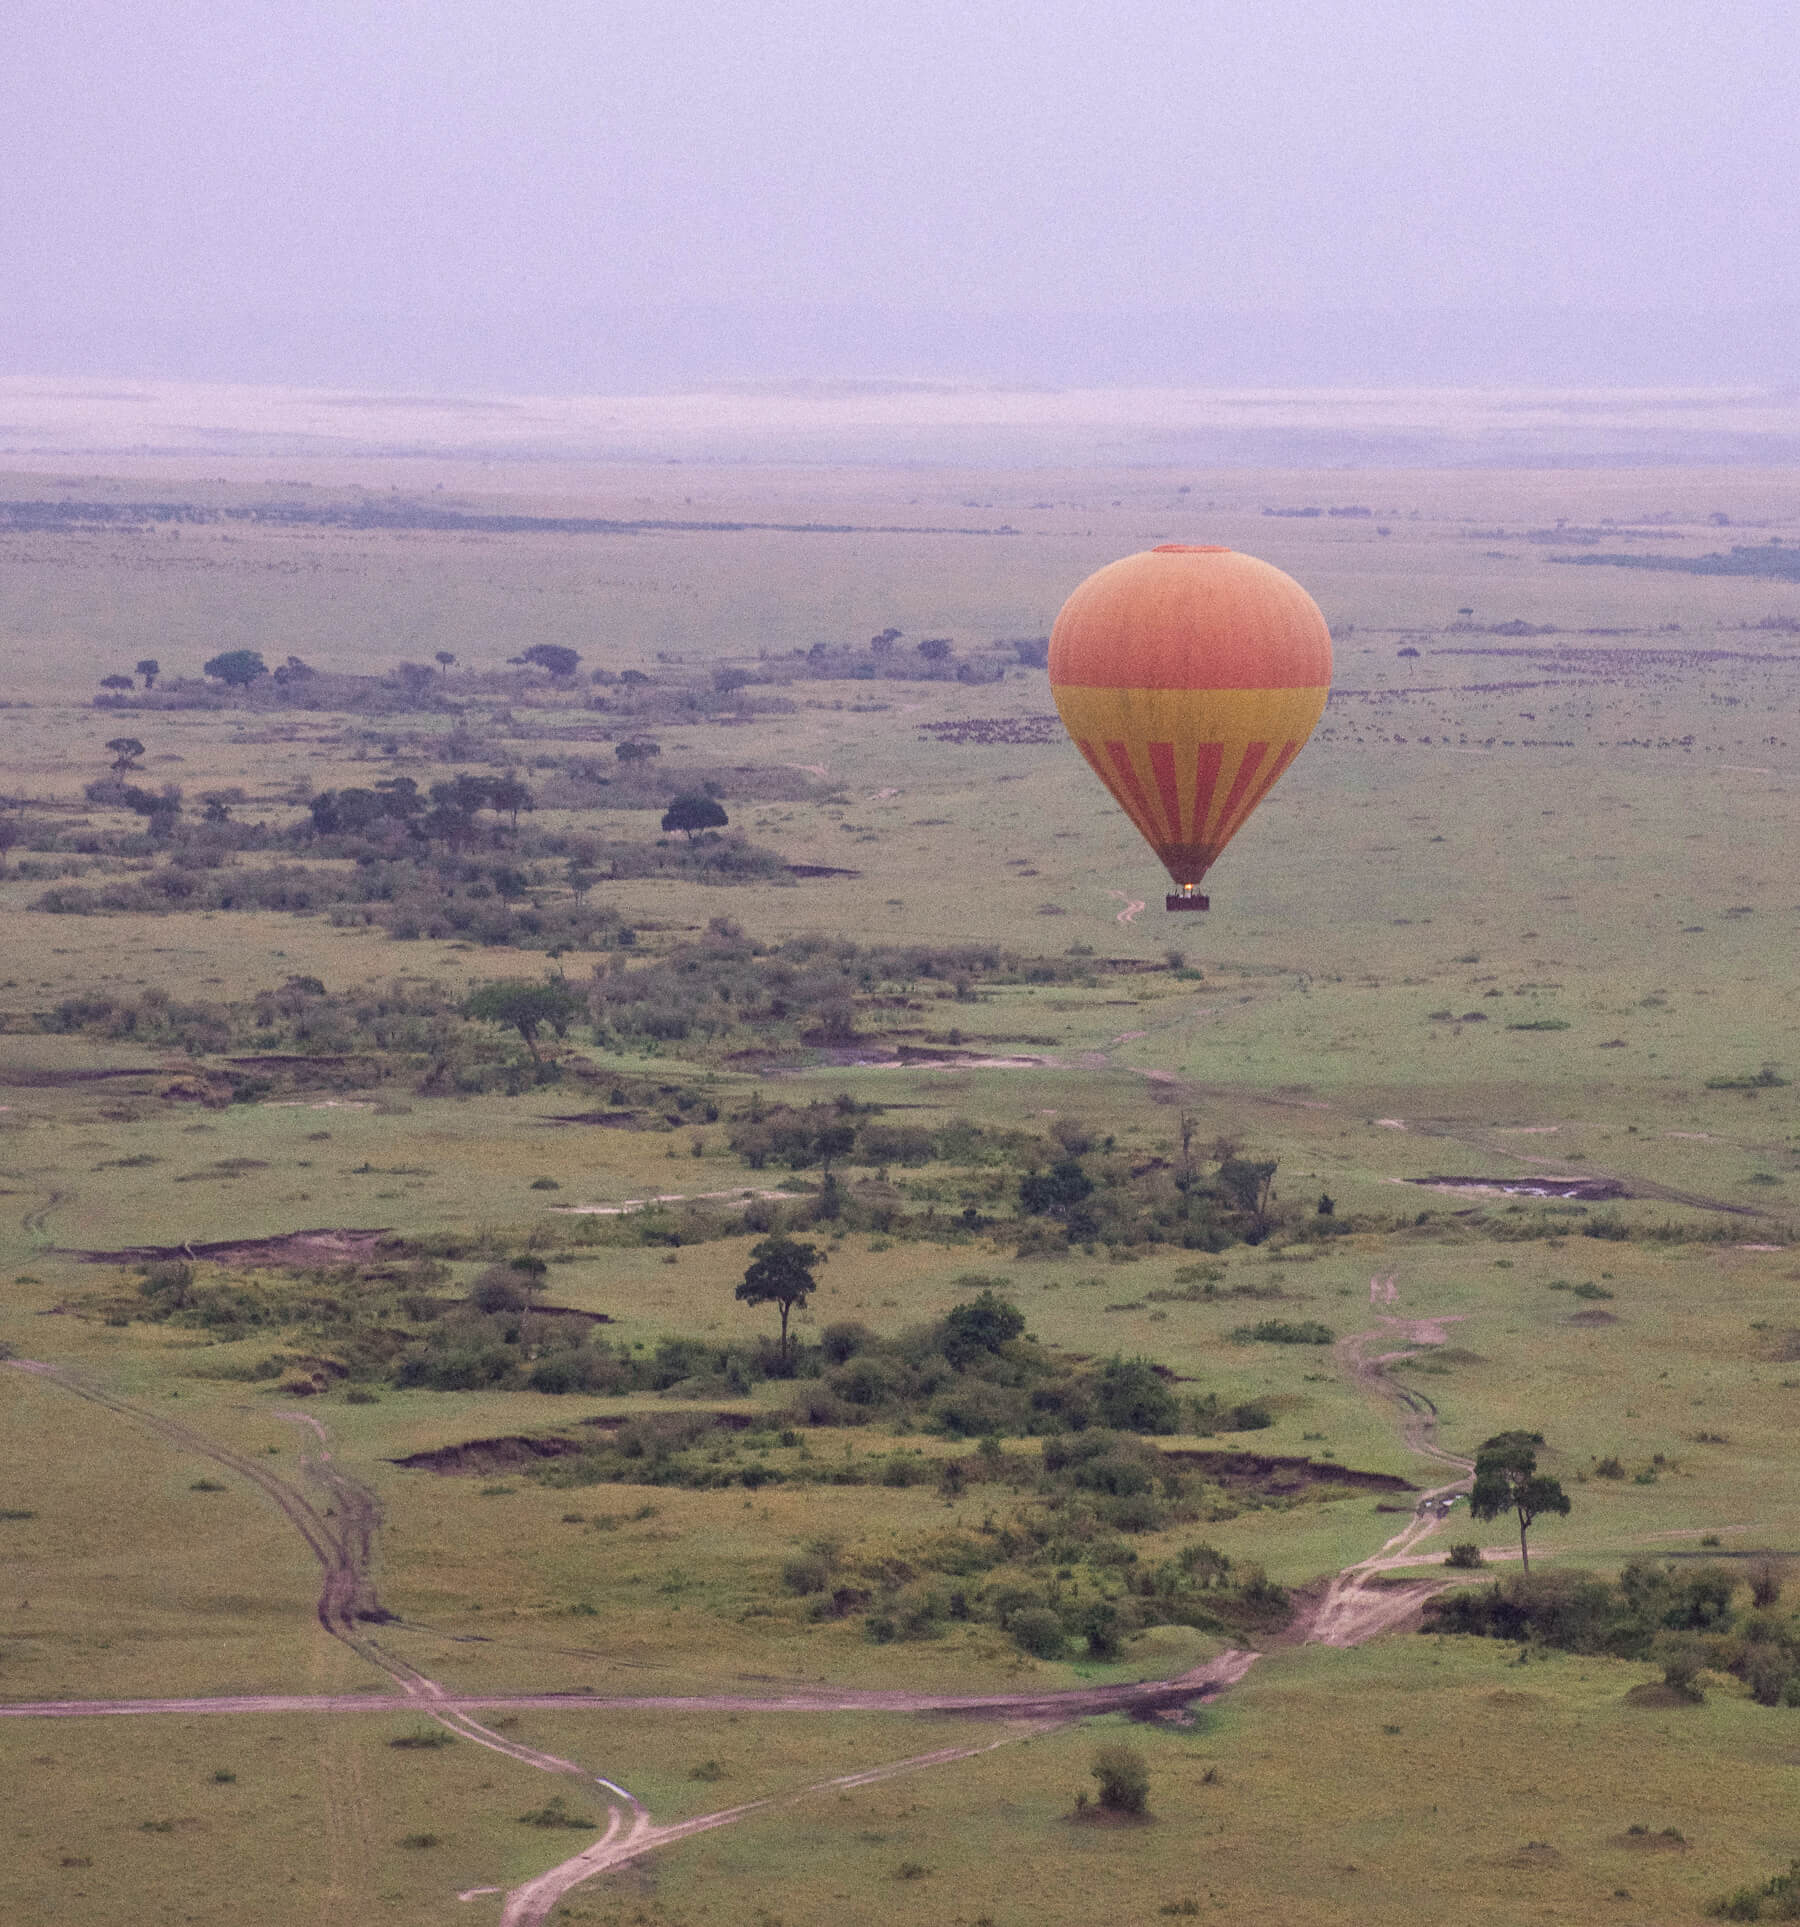 An orange hot air balloon flying over the Maasai Mara and a line of rugged trees